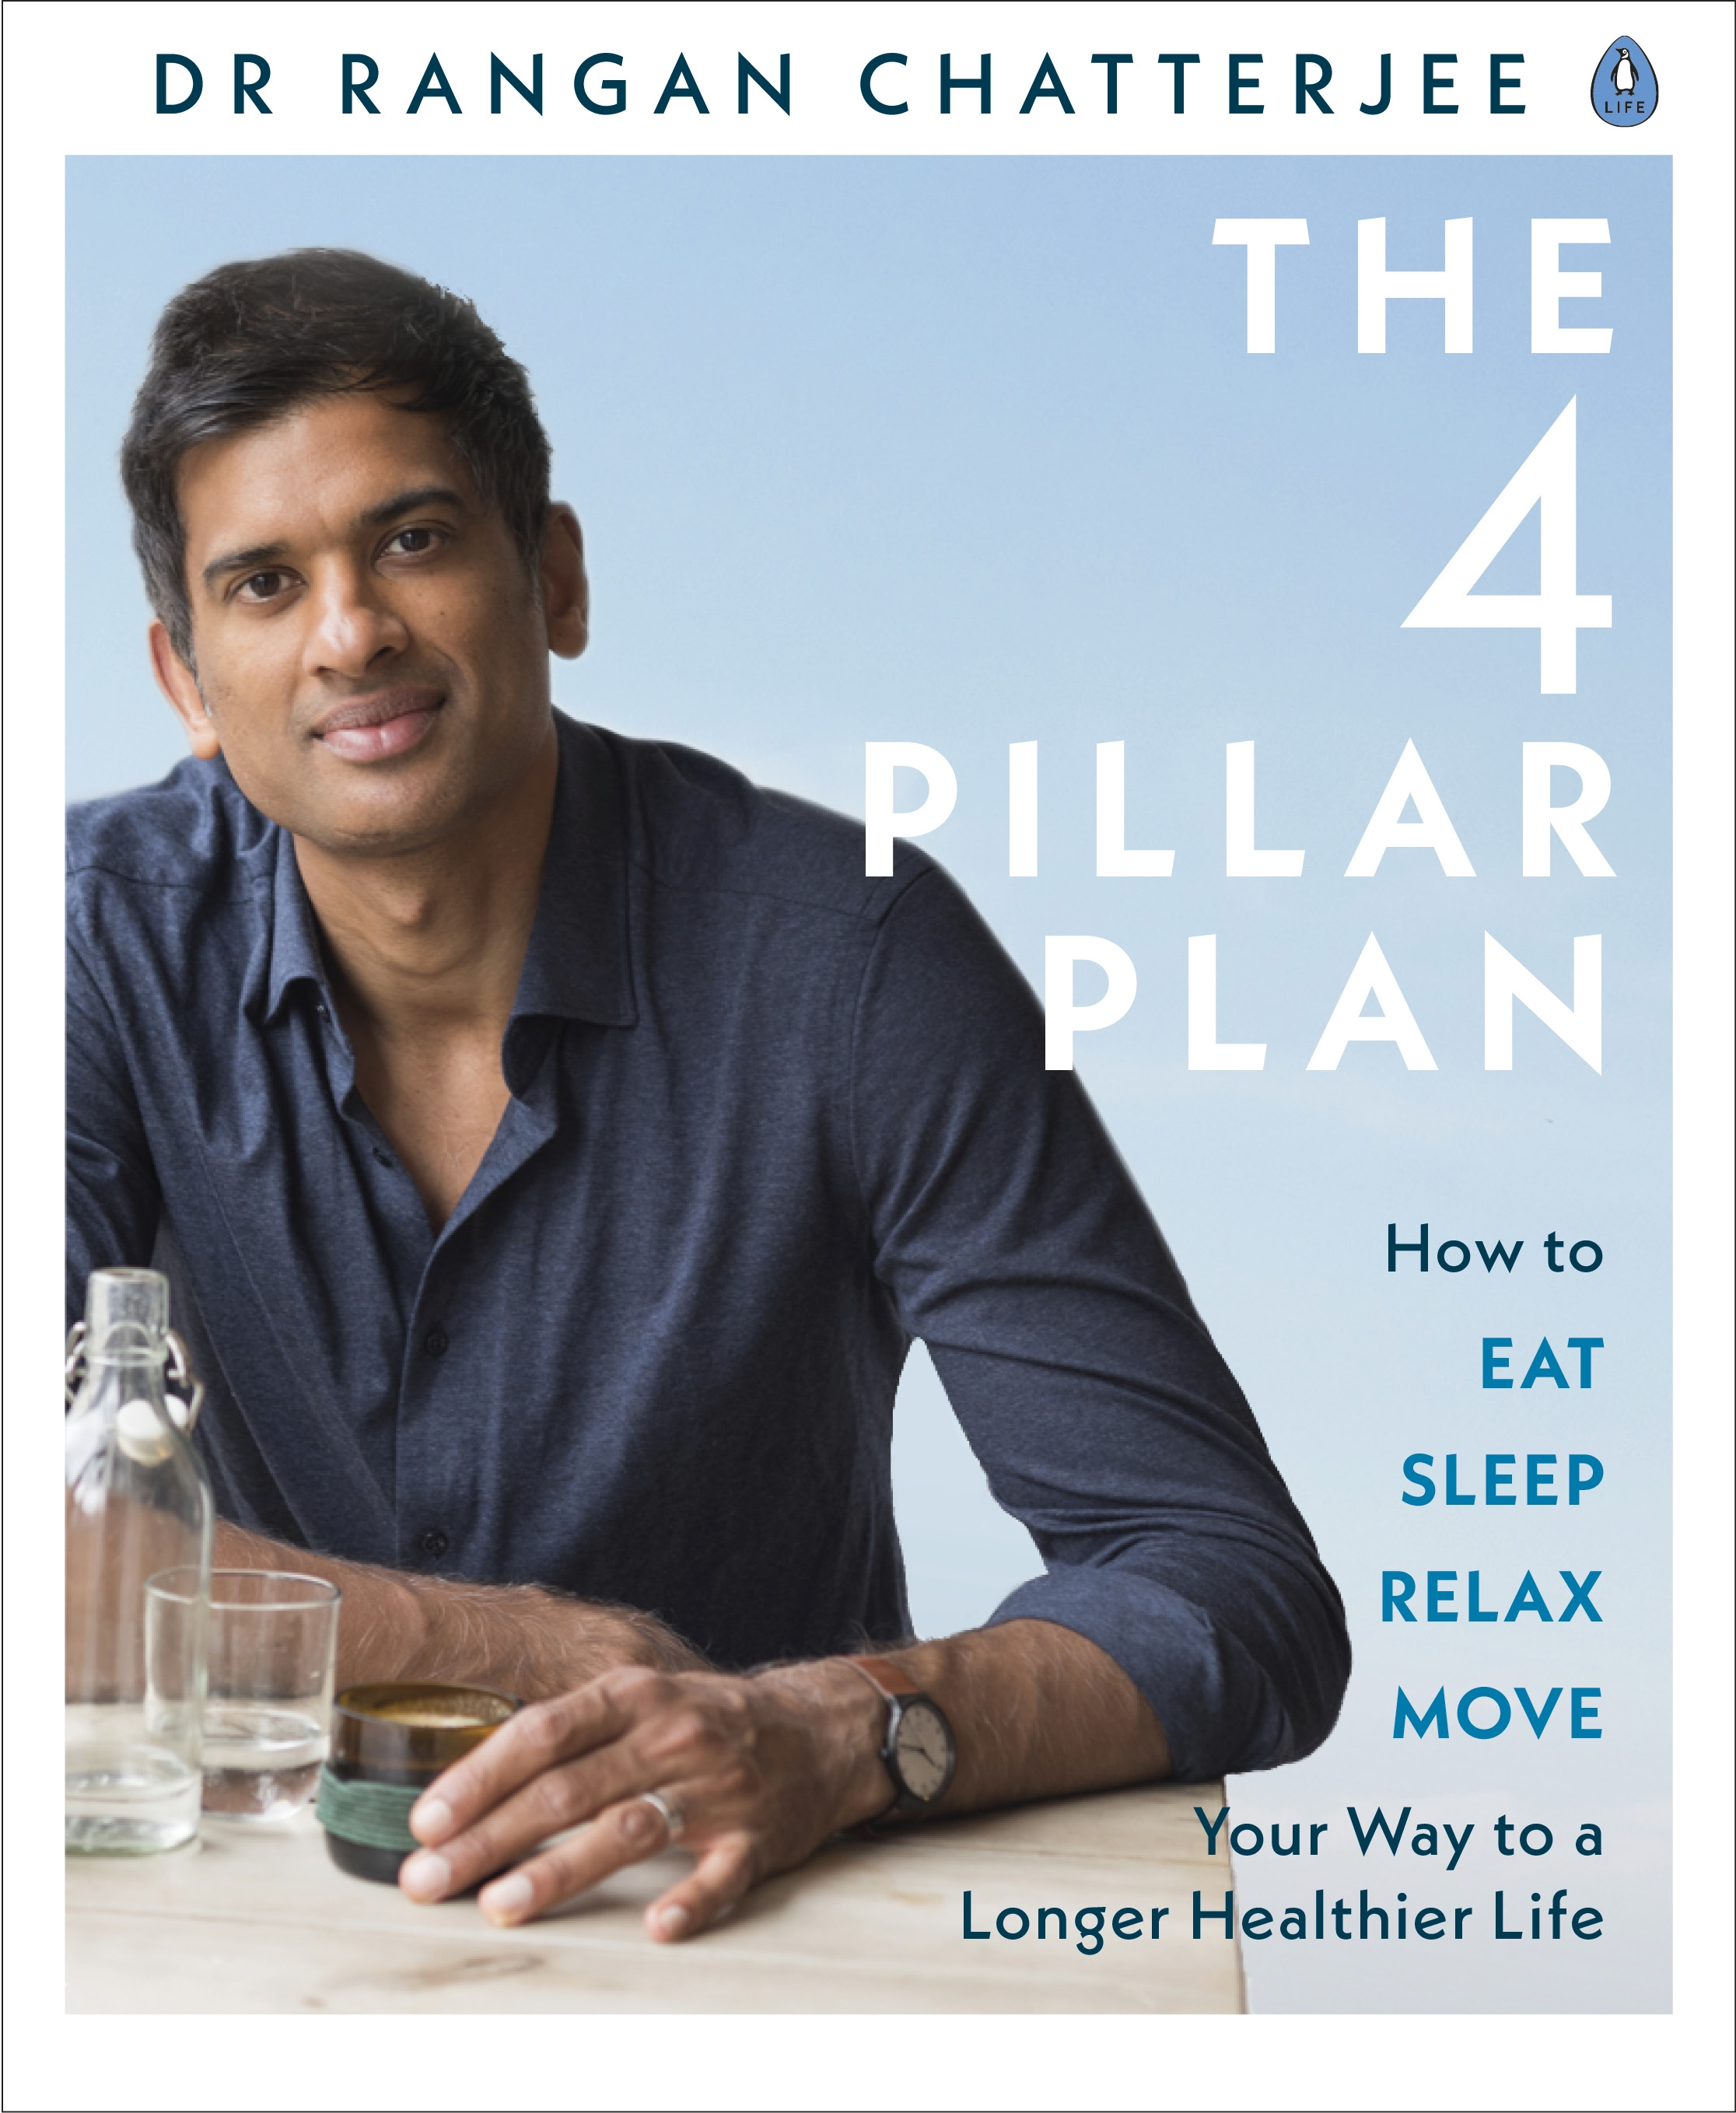 The 4 Pillar Plan by Dr Rangan Chatterjee